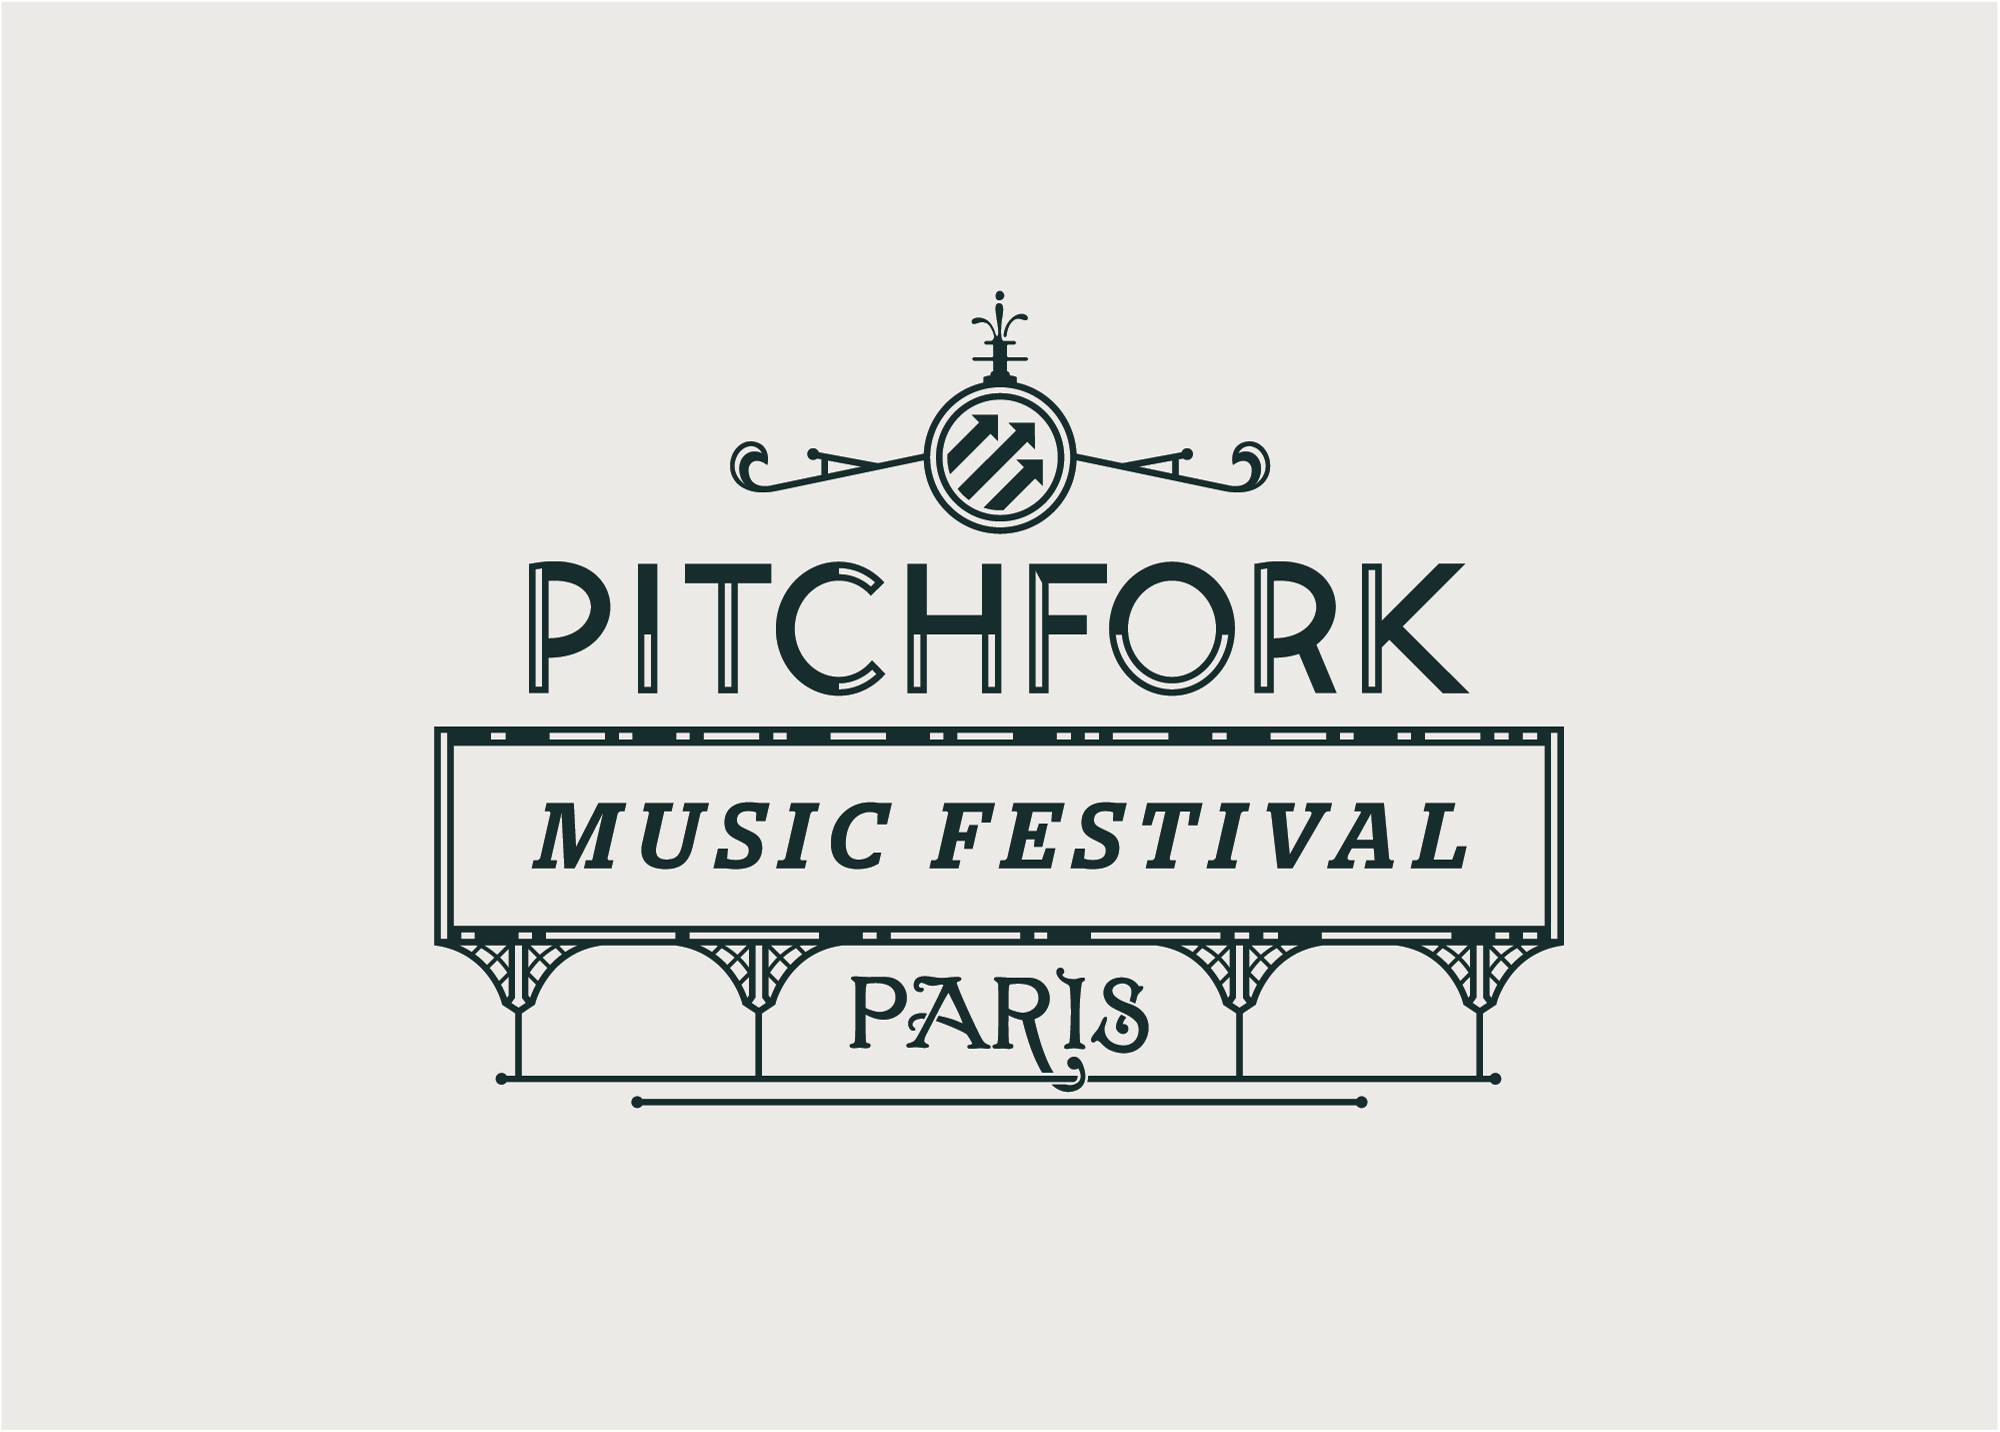 Pitchfork Festival Preview – Paris 2012 : Essentials for Thursday